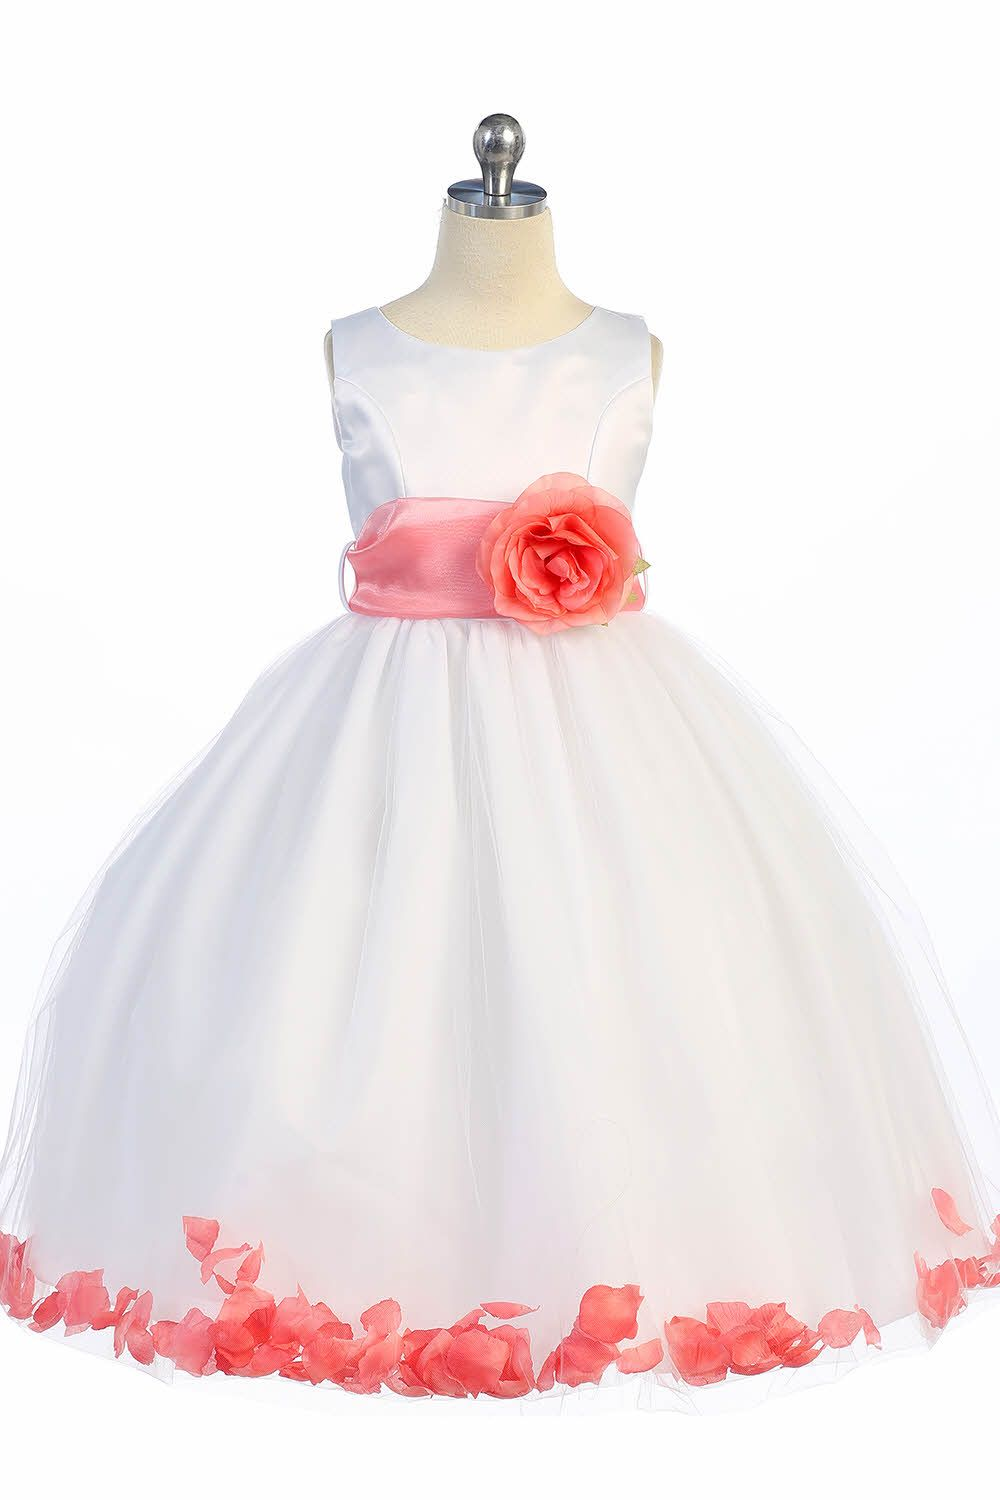 87c9b8e5d71 White Coral Satin   Tulle Petal Flower Girl Dress with Sash   Flower ...